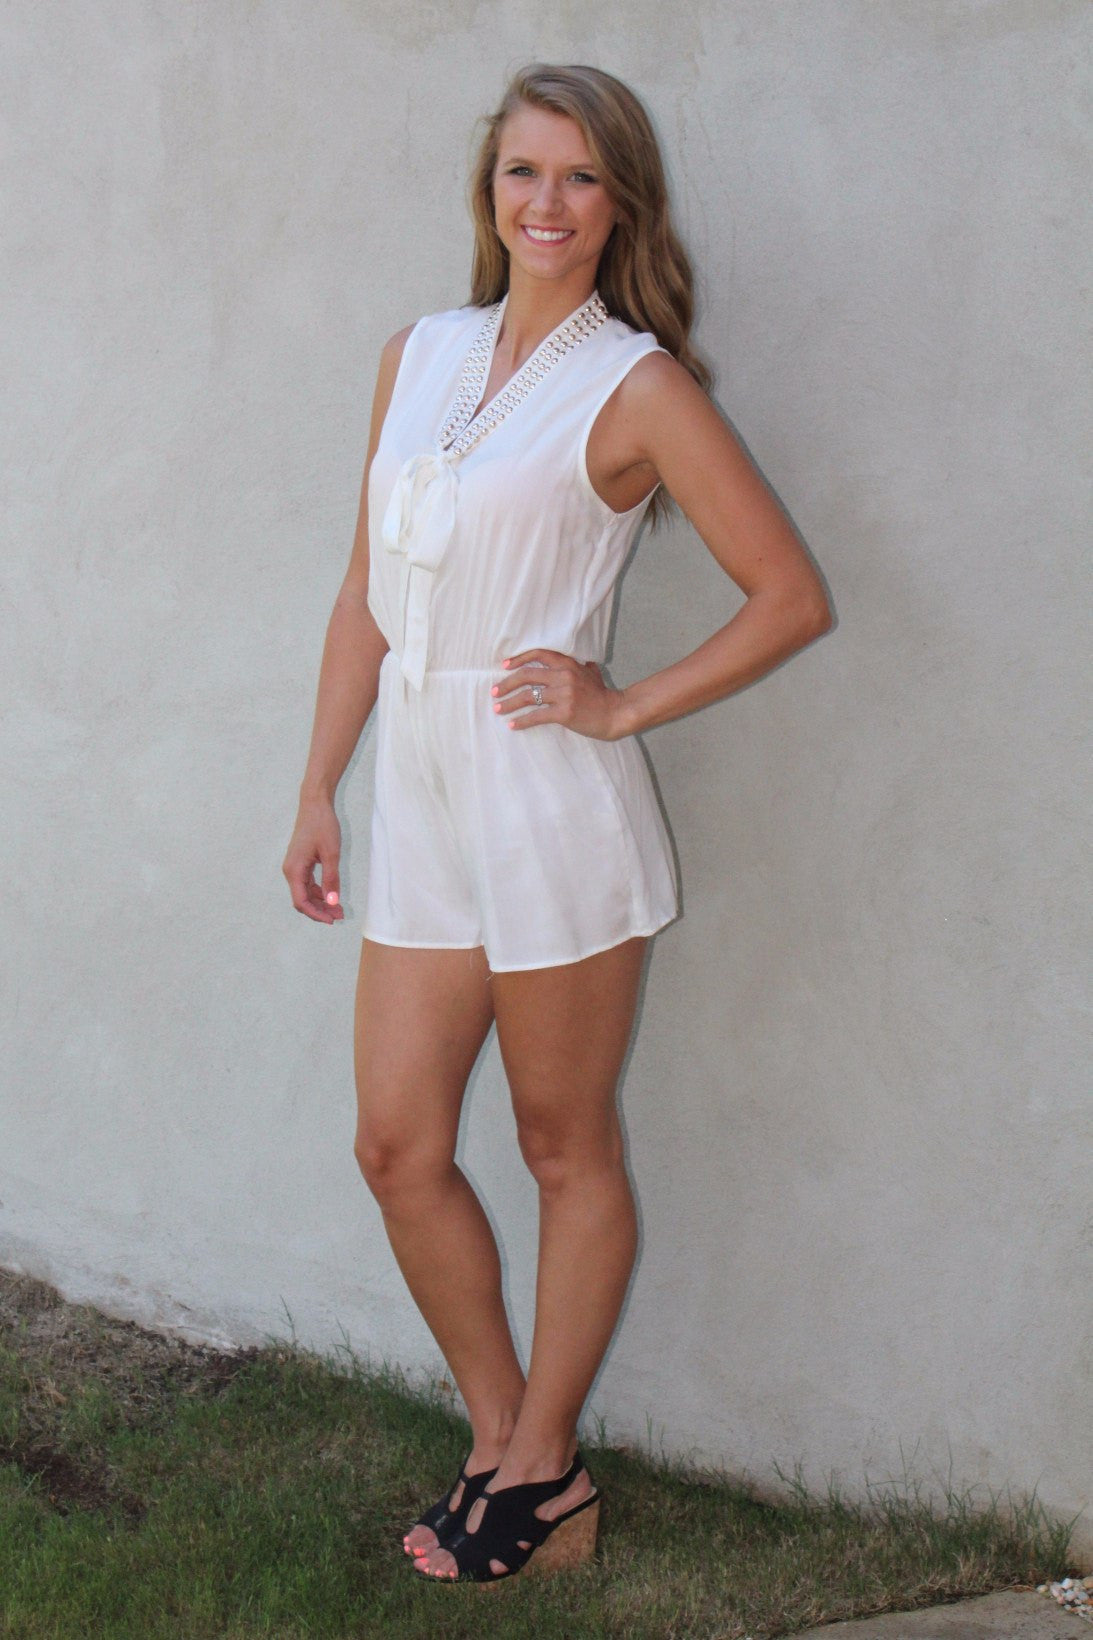 keeping it classy white romper ambees boutique rh ambeesboutique com classy white girl style classy white girl style